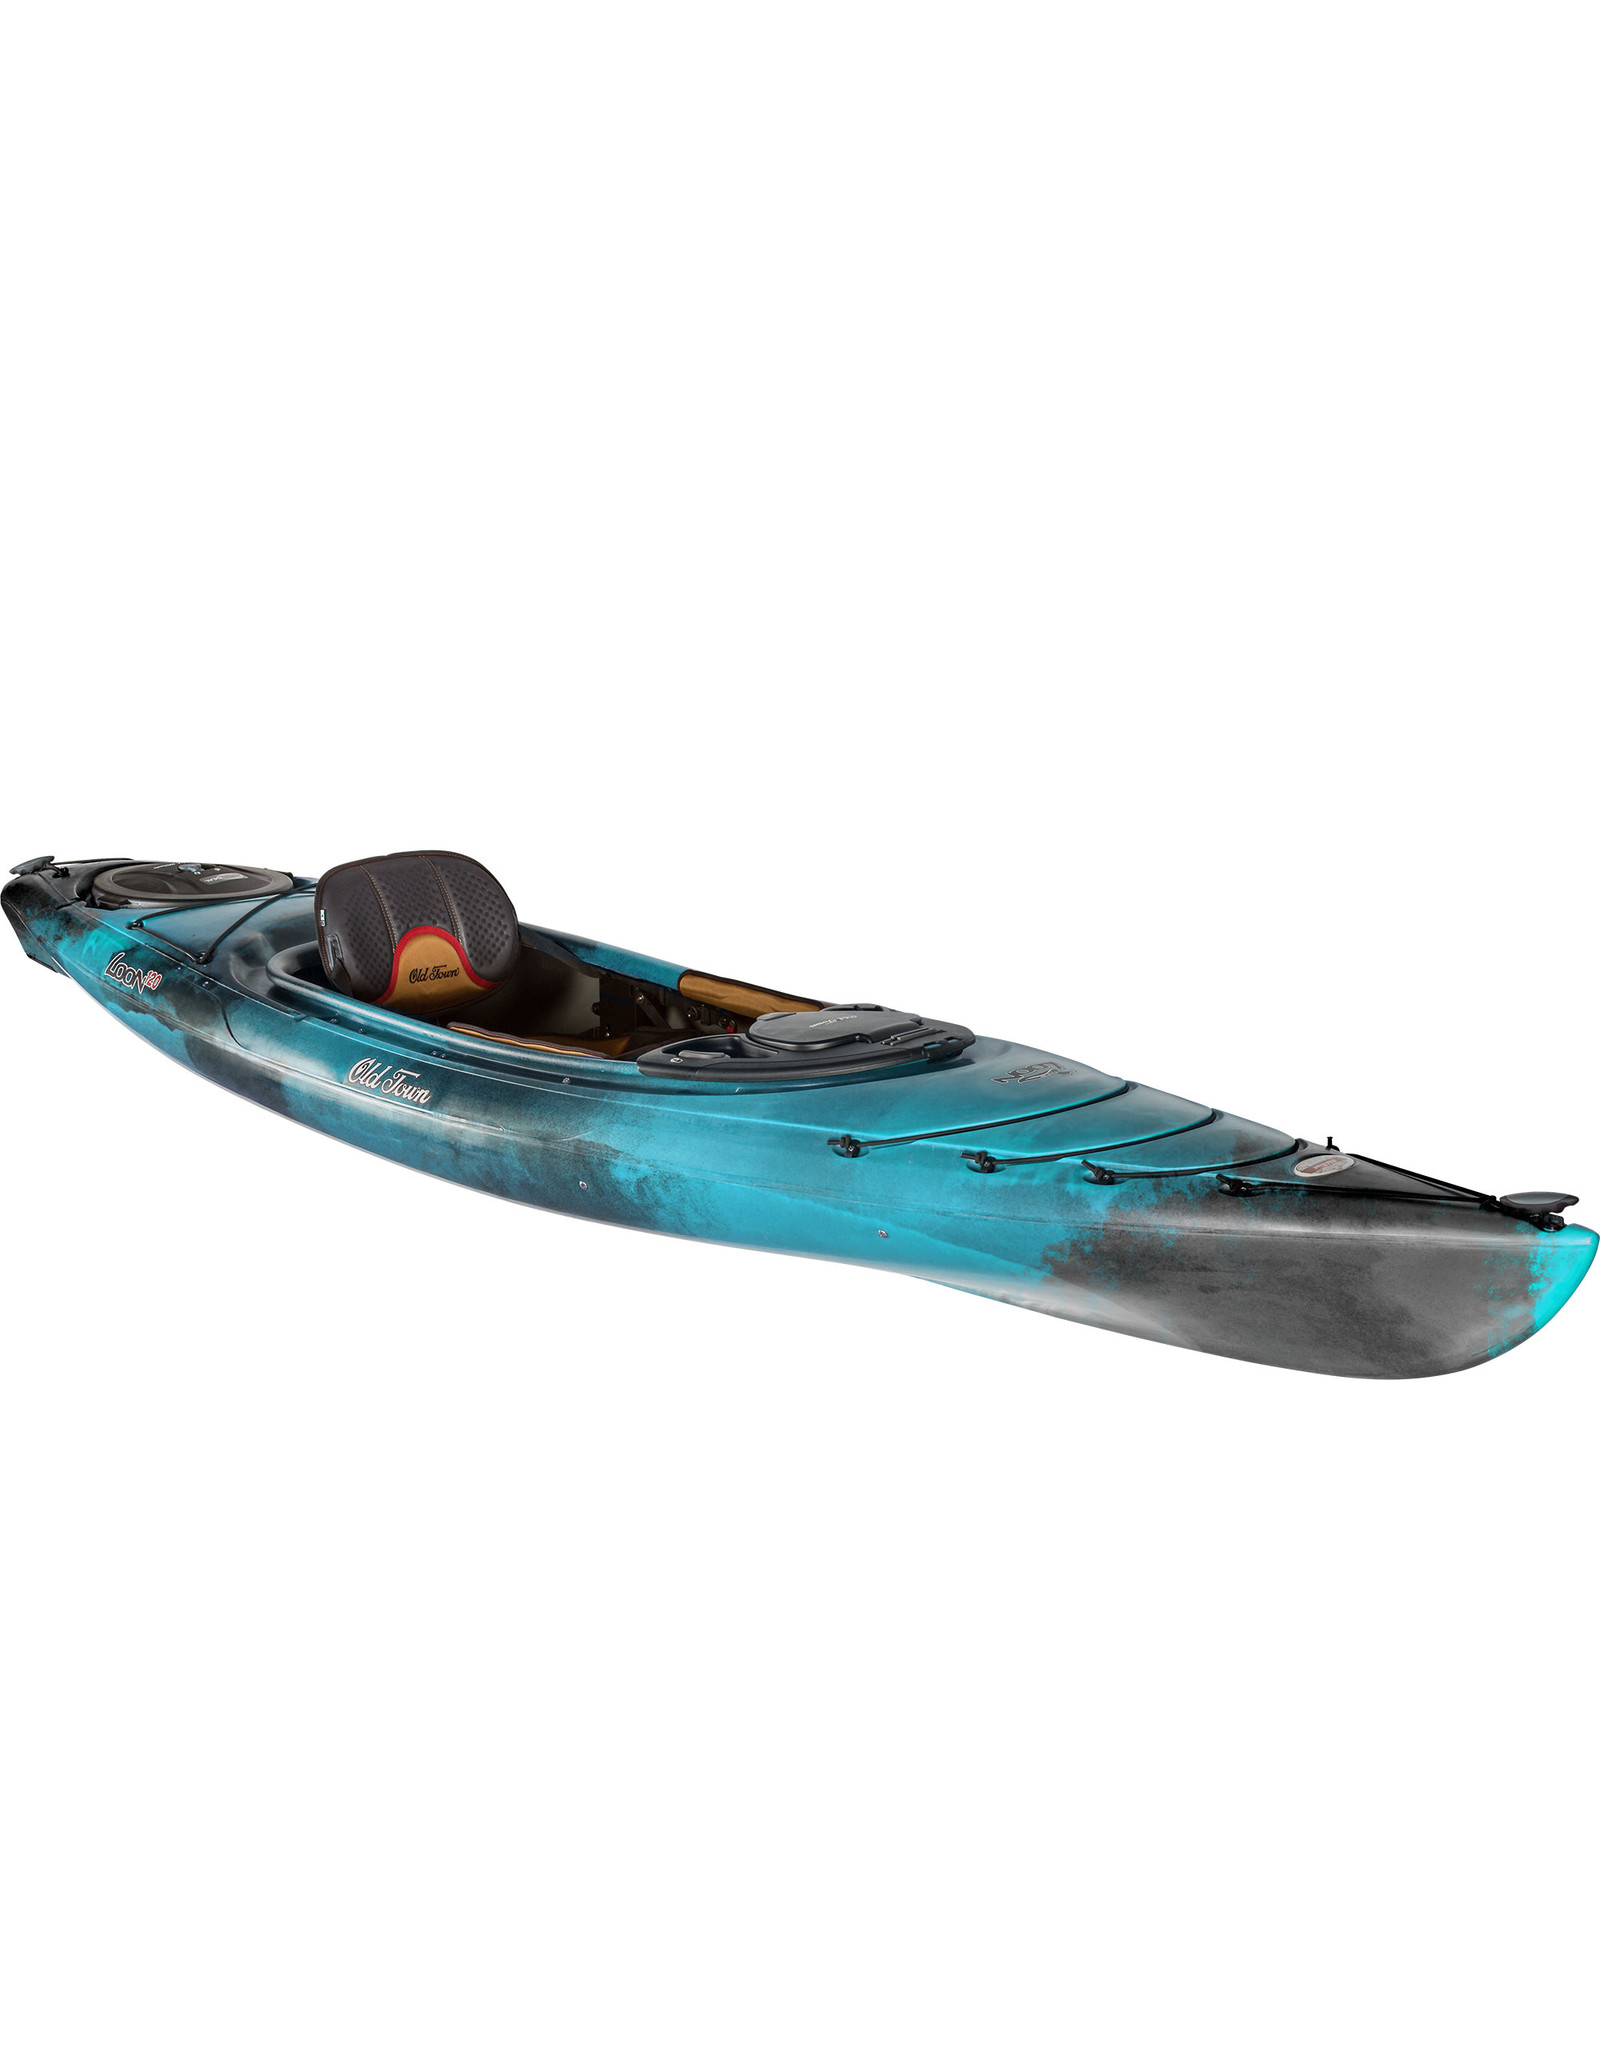 Old Town Old Town kayak Loon 120